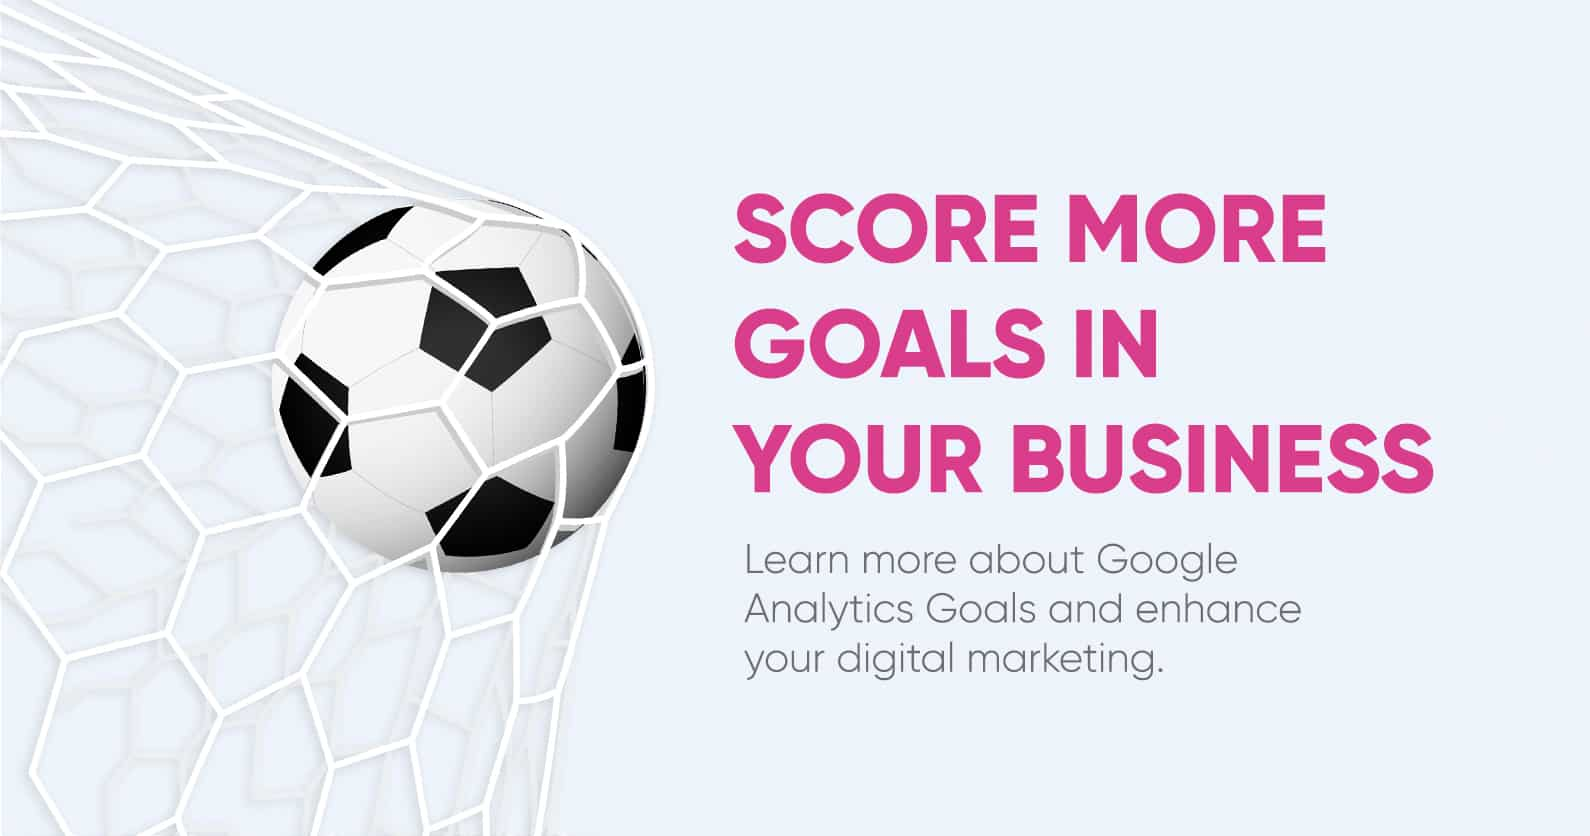 What are Google Analytics Goals